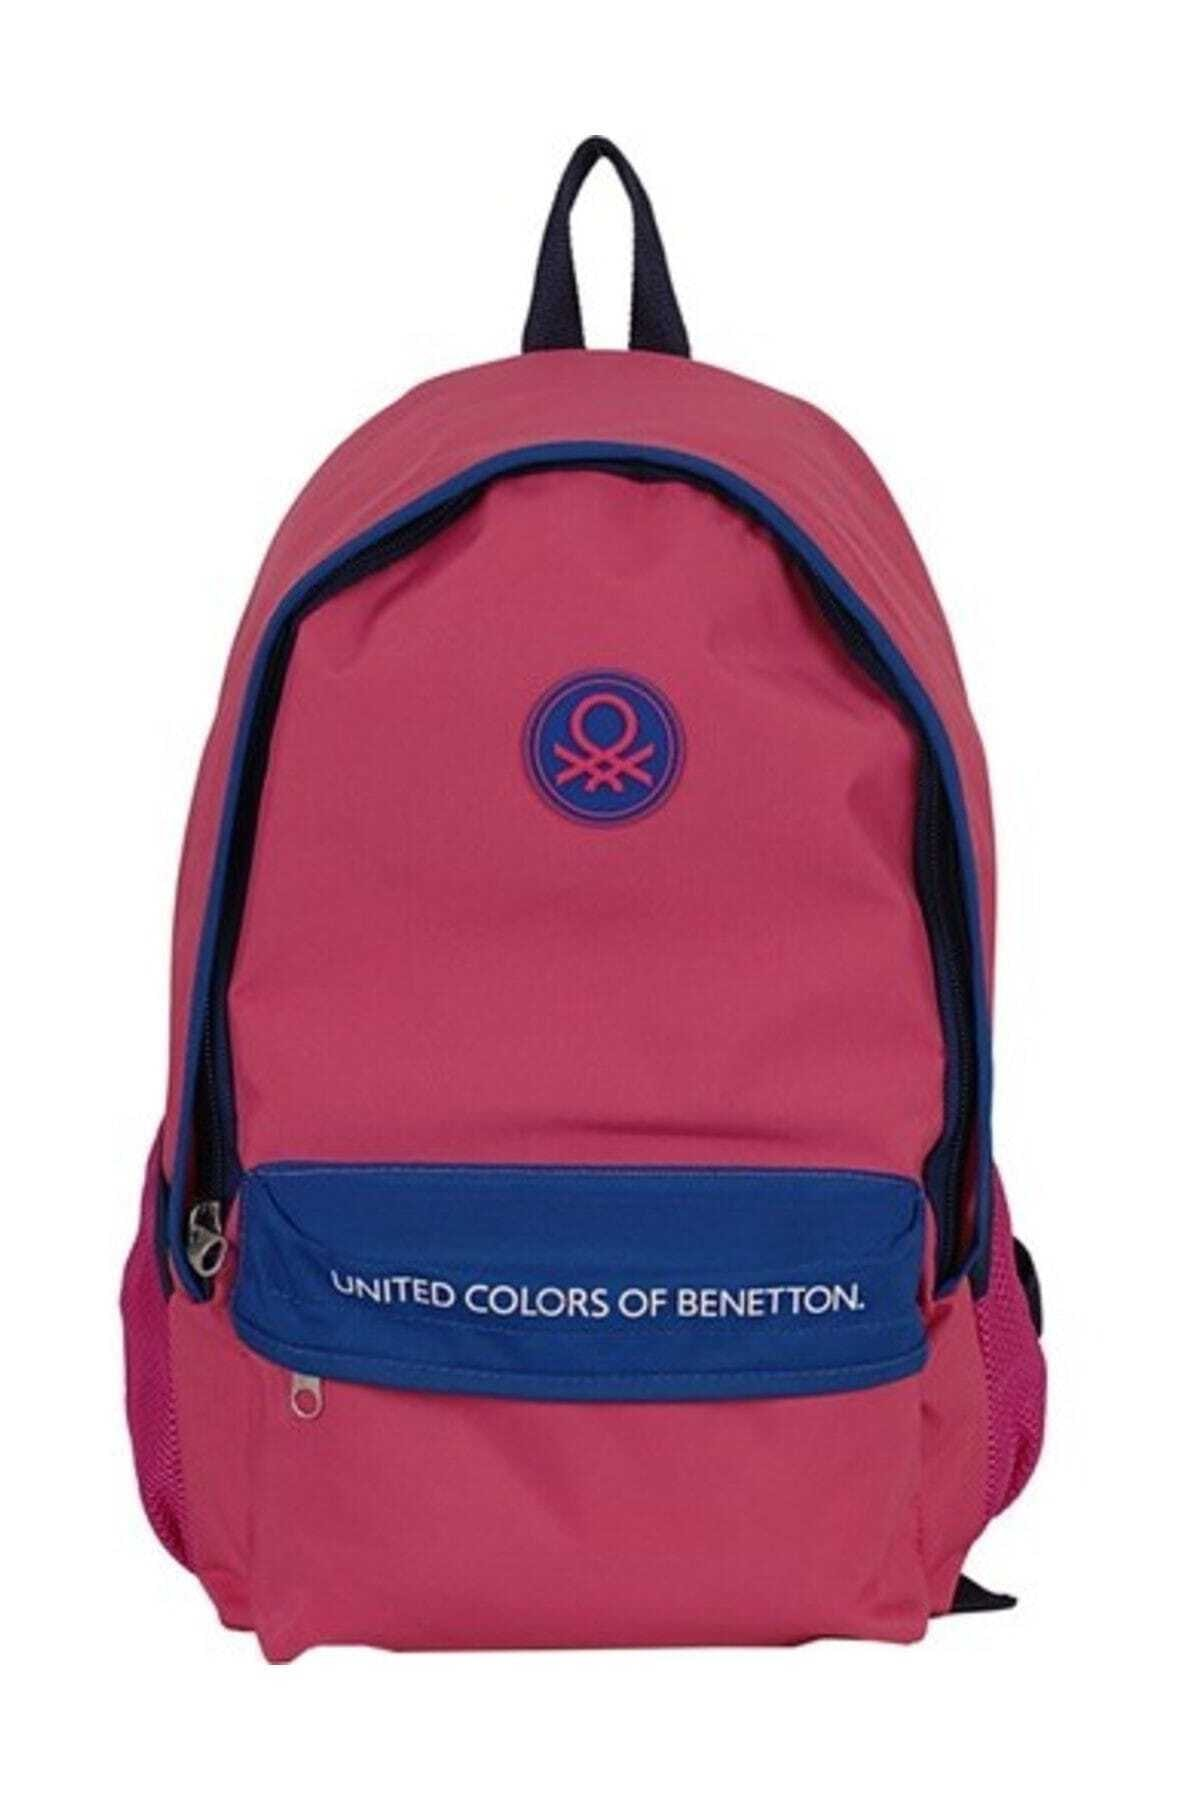 Benetton United Colors Of 96065 Okul Çantası Pembe - Lacivert 1